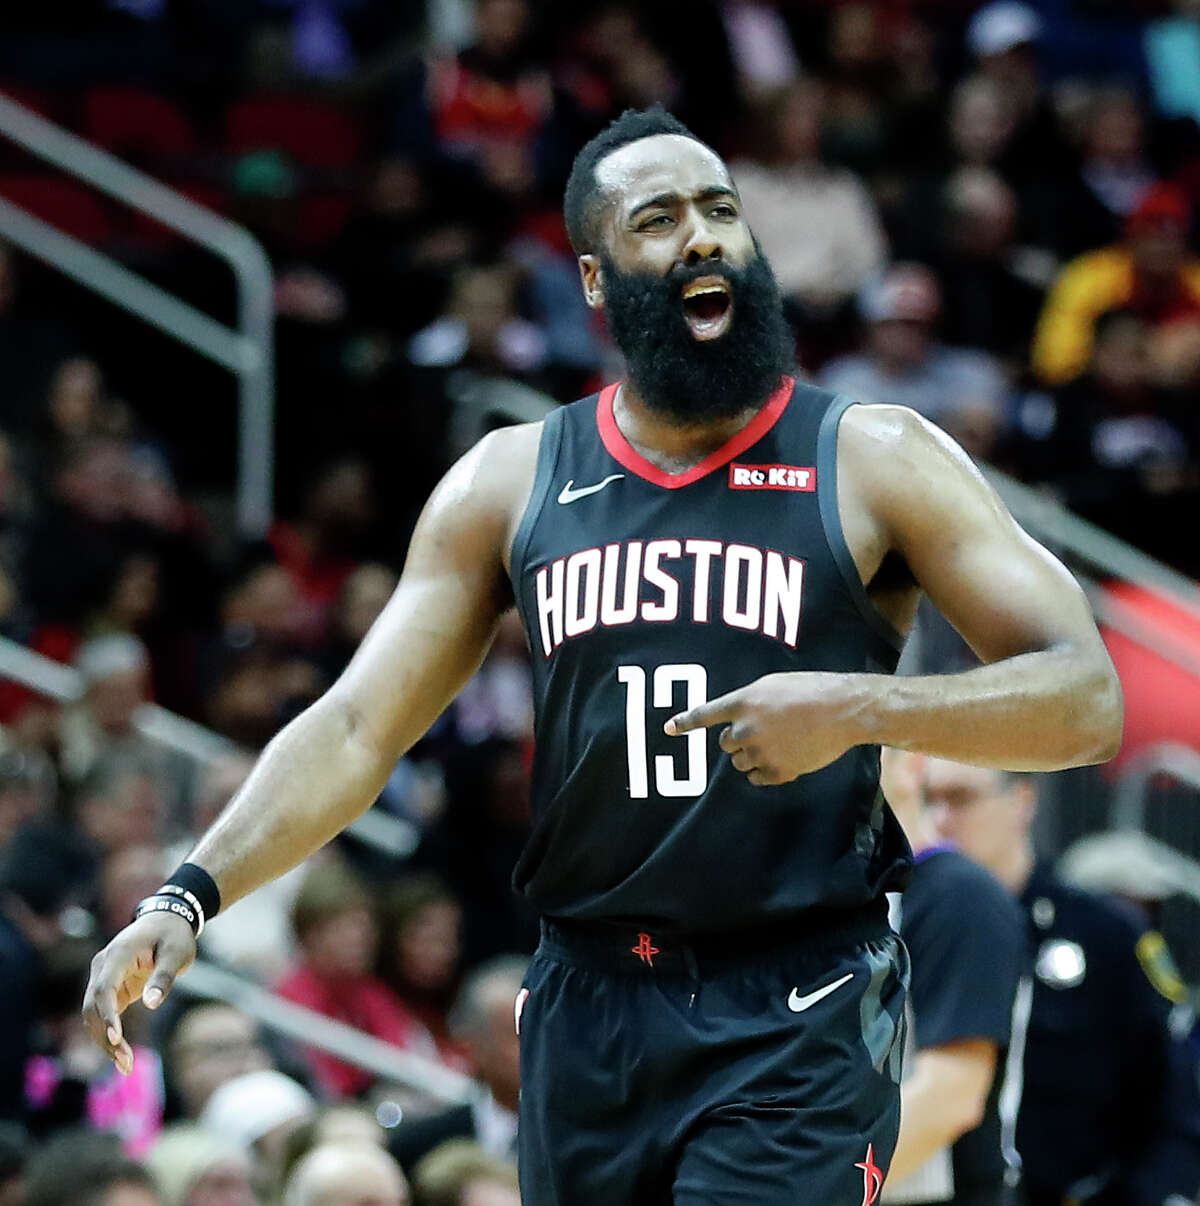 Houston Rockets guard James Harden (13) tries to get the crowd fired up during the second half of an NBA game at Toyota Center, Thursday, Feb. 28, 2019, in Houston.